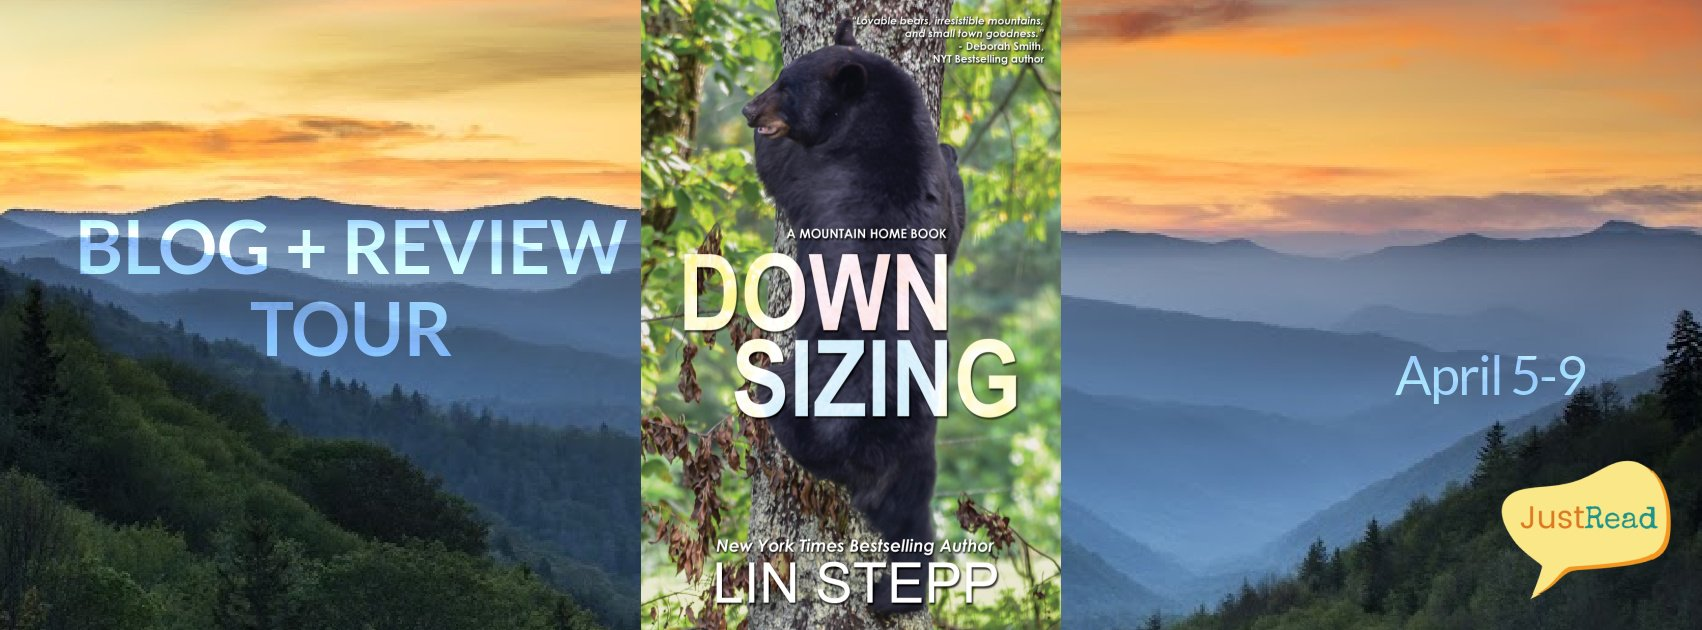 Welcome to the Downsizing Blog + Review Tour & Giveaway!